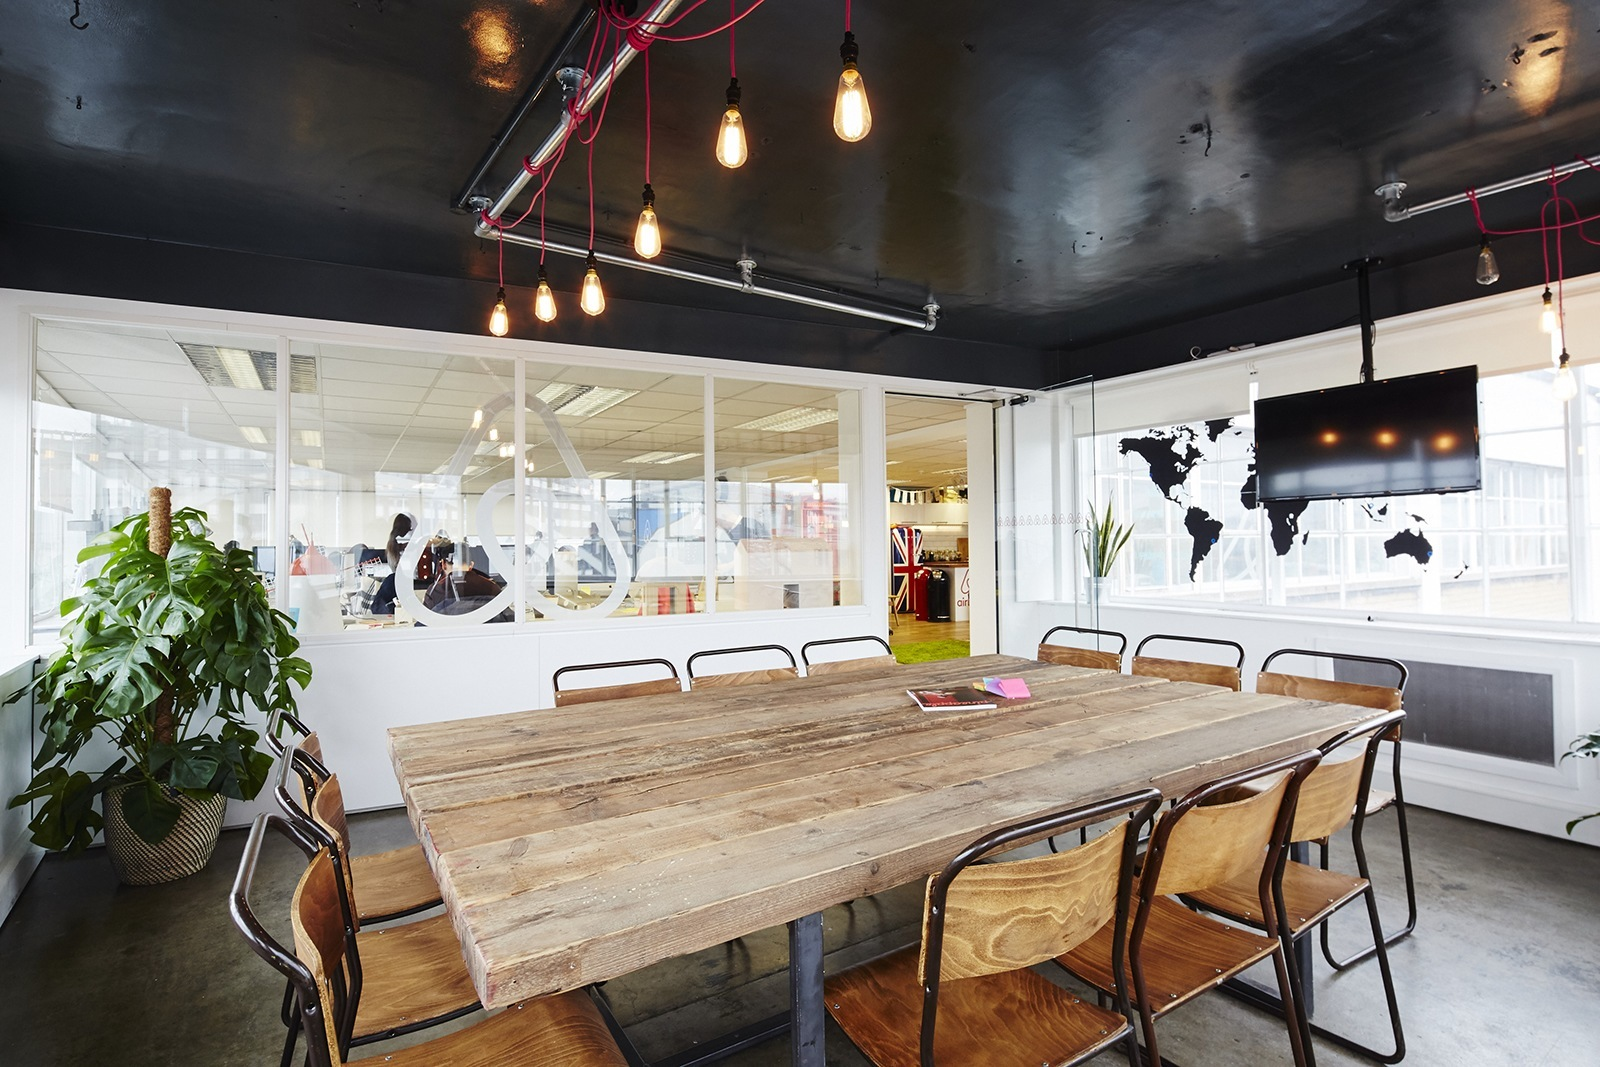 A Look Inside Airbnb's New Offices in London